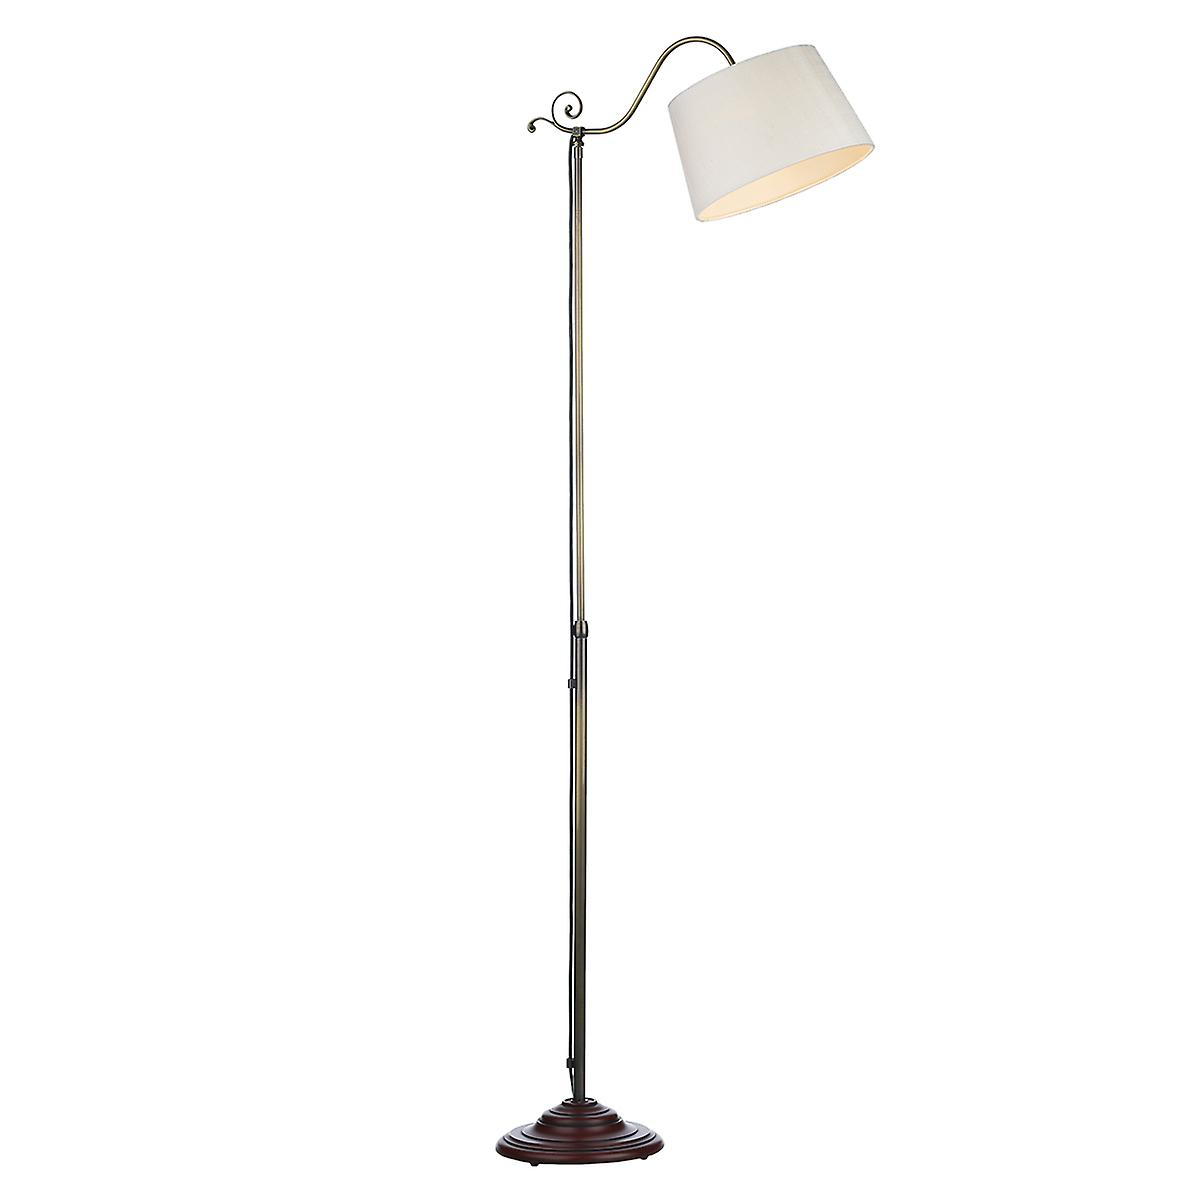 David Hunt ZA10AB Campden Floor Lamp In A Antique Brass Finish - Shade Sold Separately